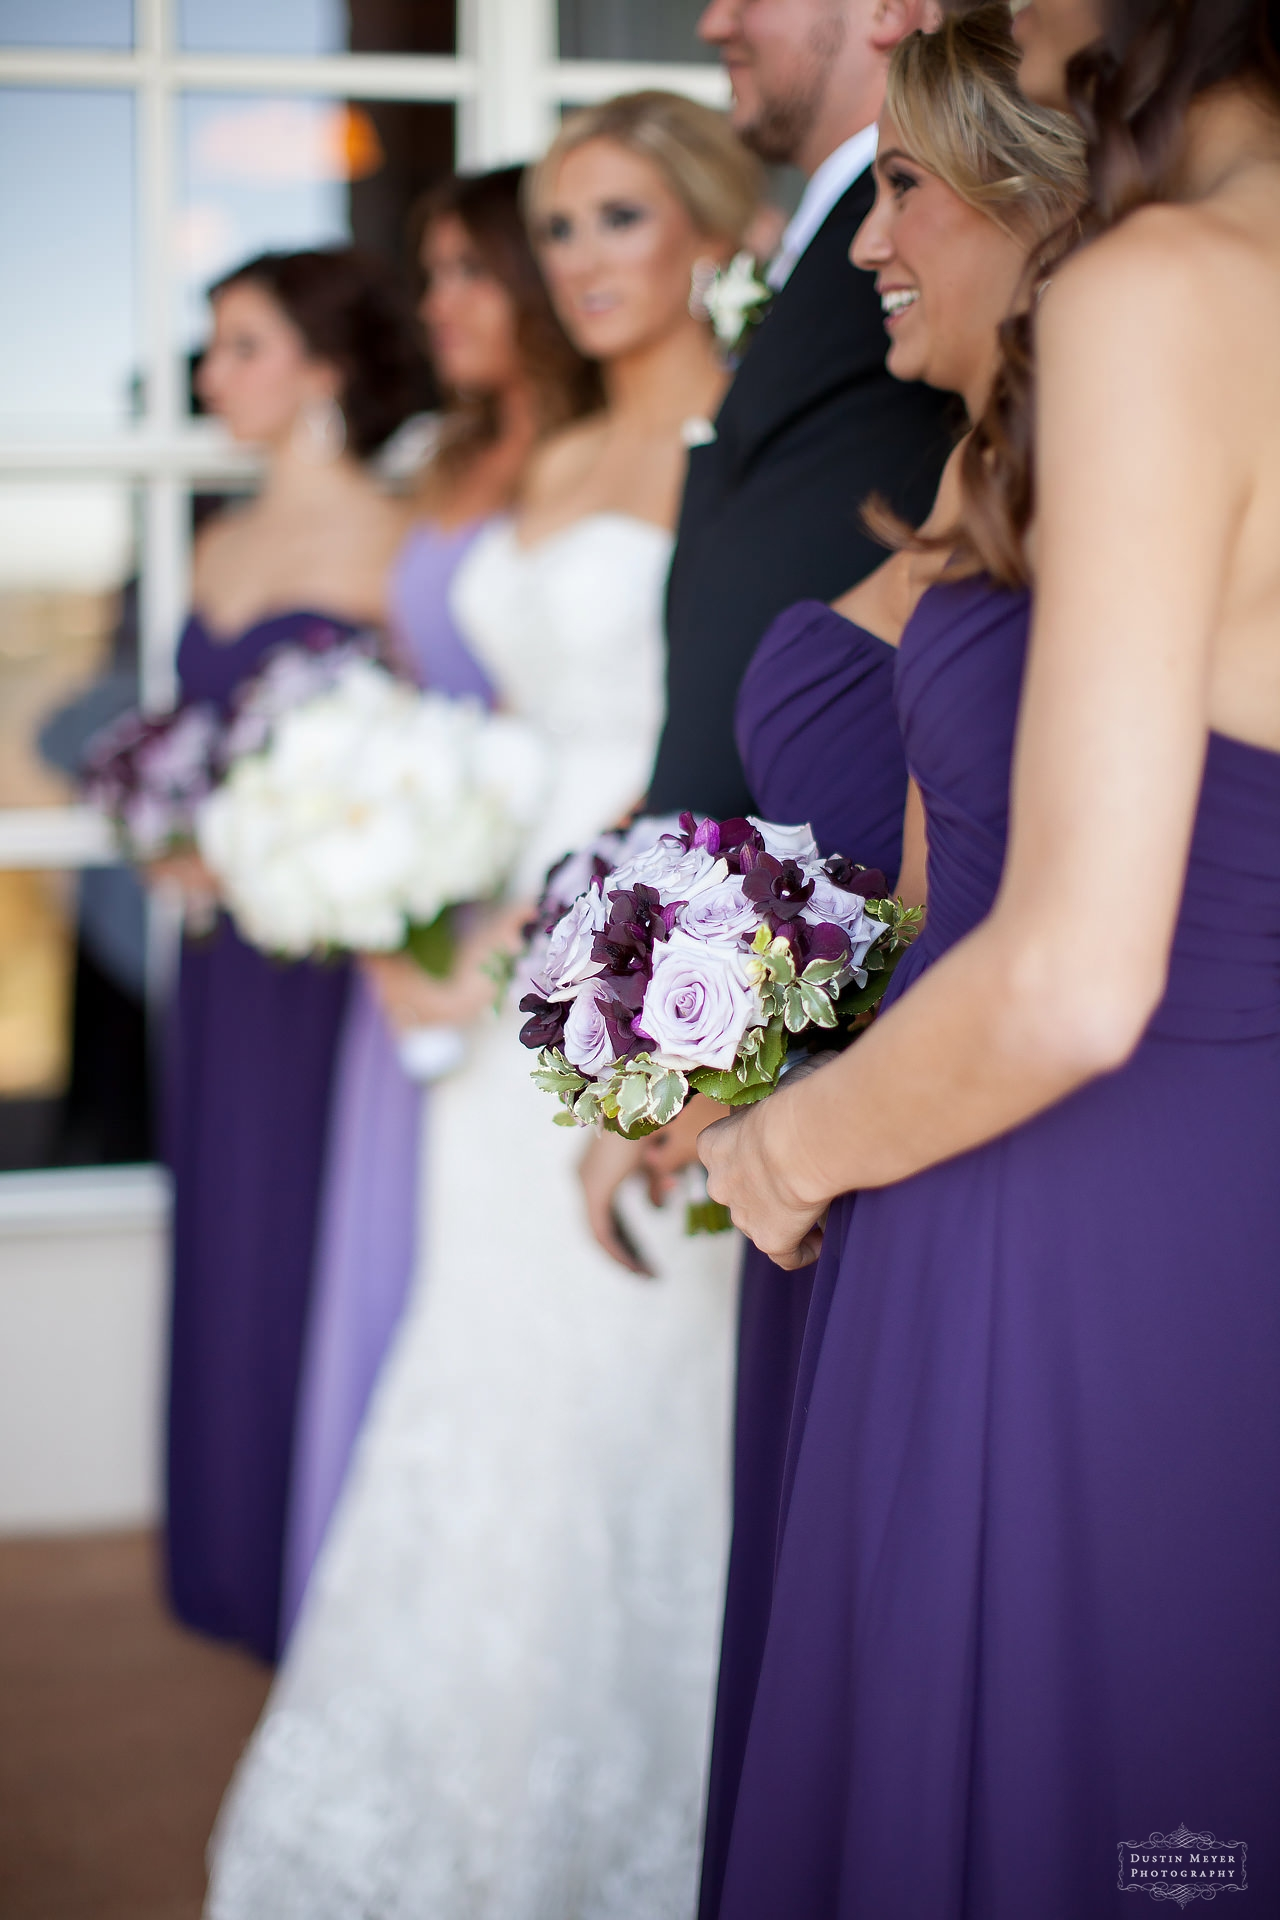 bridesmaids purple strapless wedding dresses gowns and bouquets